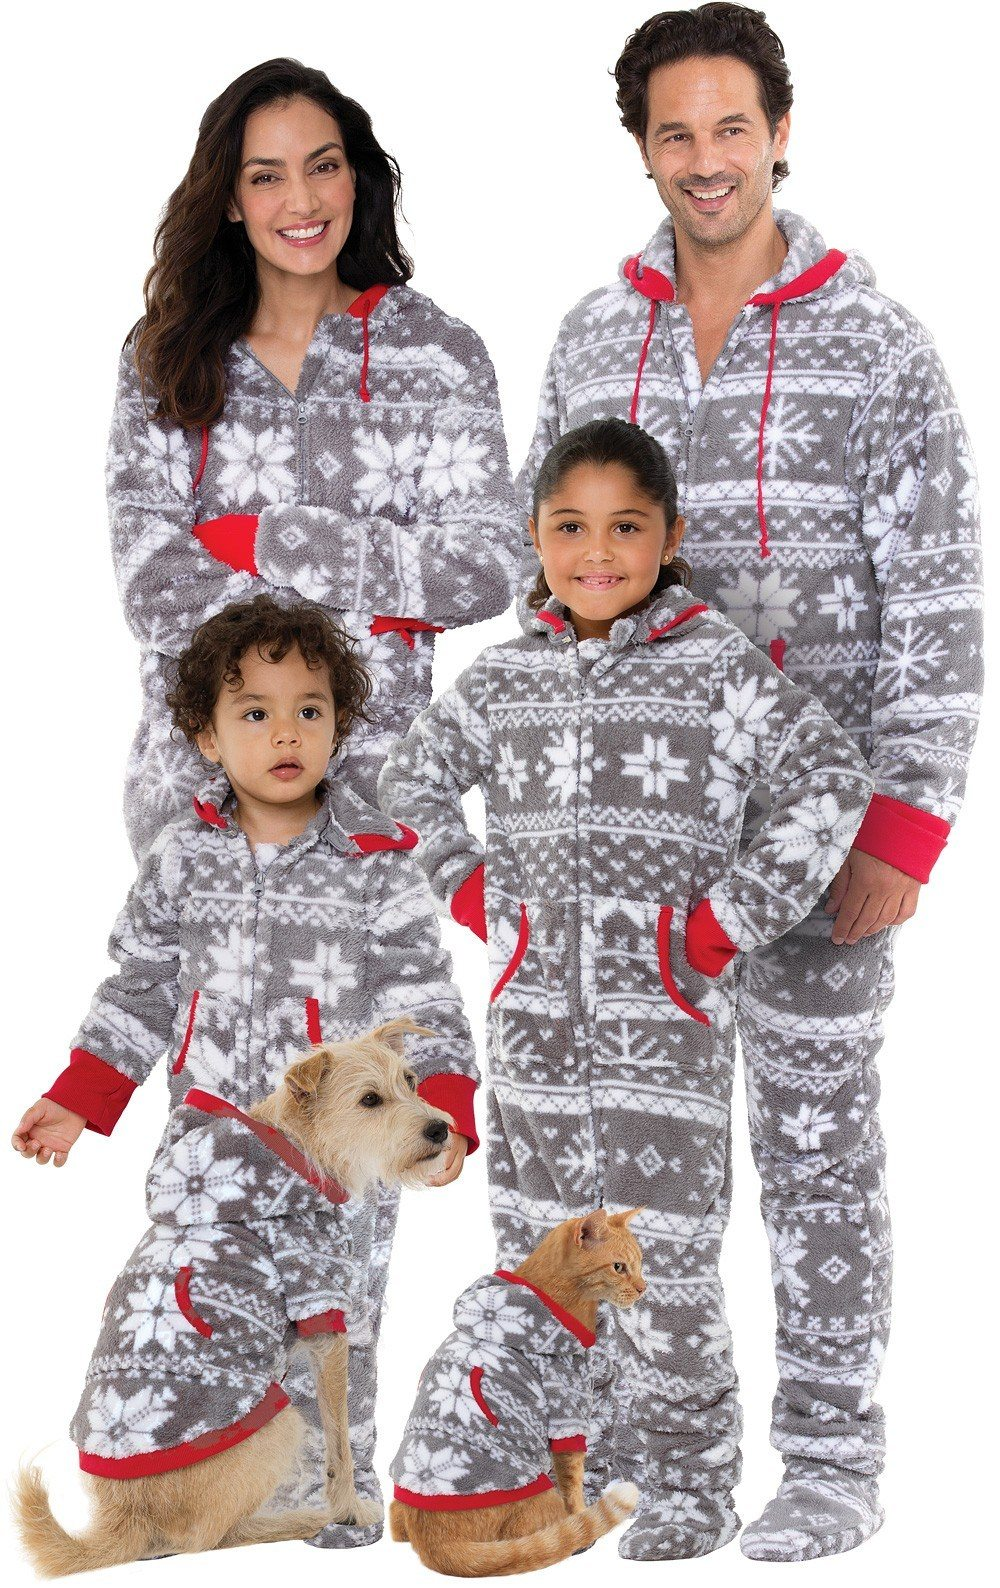 e3a9100df2 Matching Family Pajamas For The Holidays - Simplemost